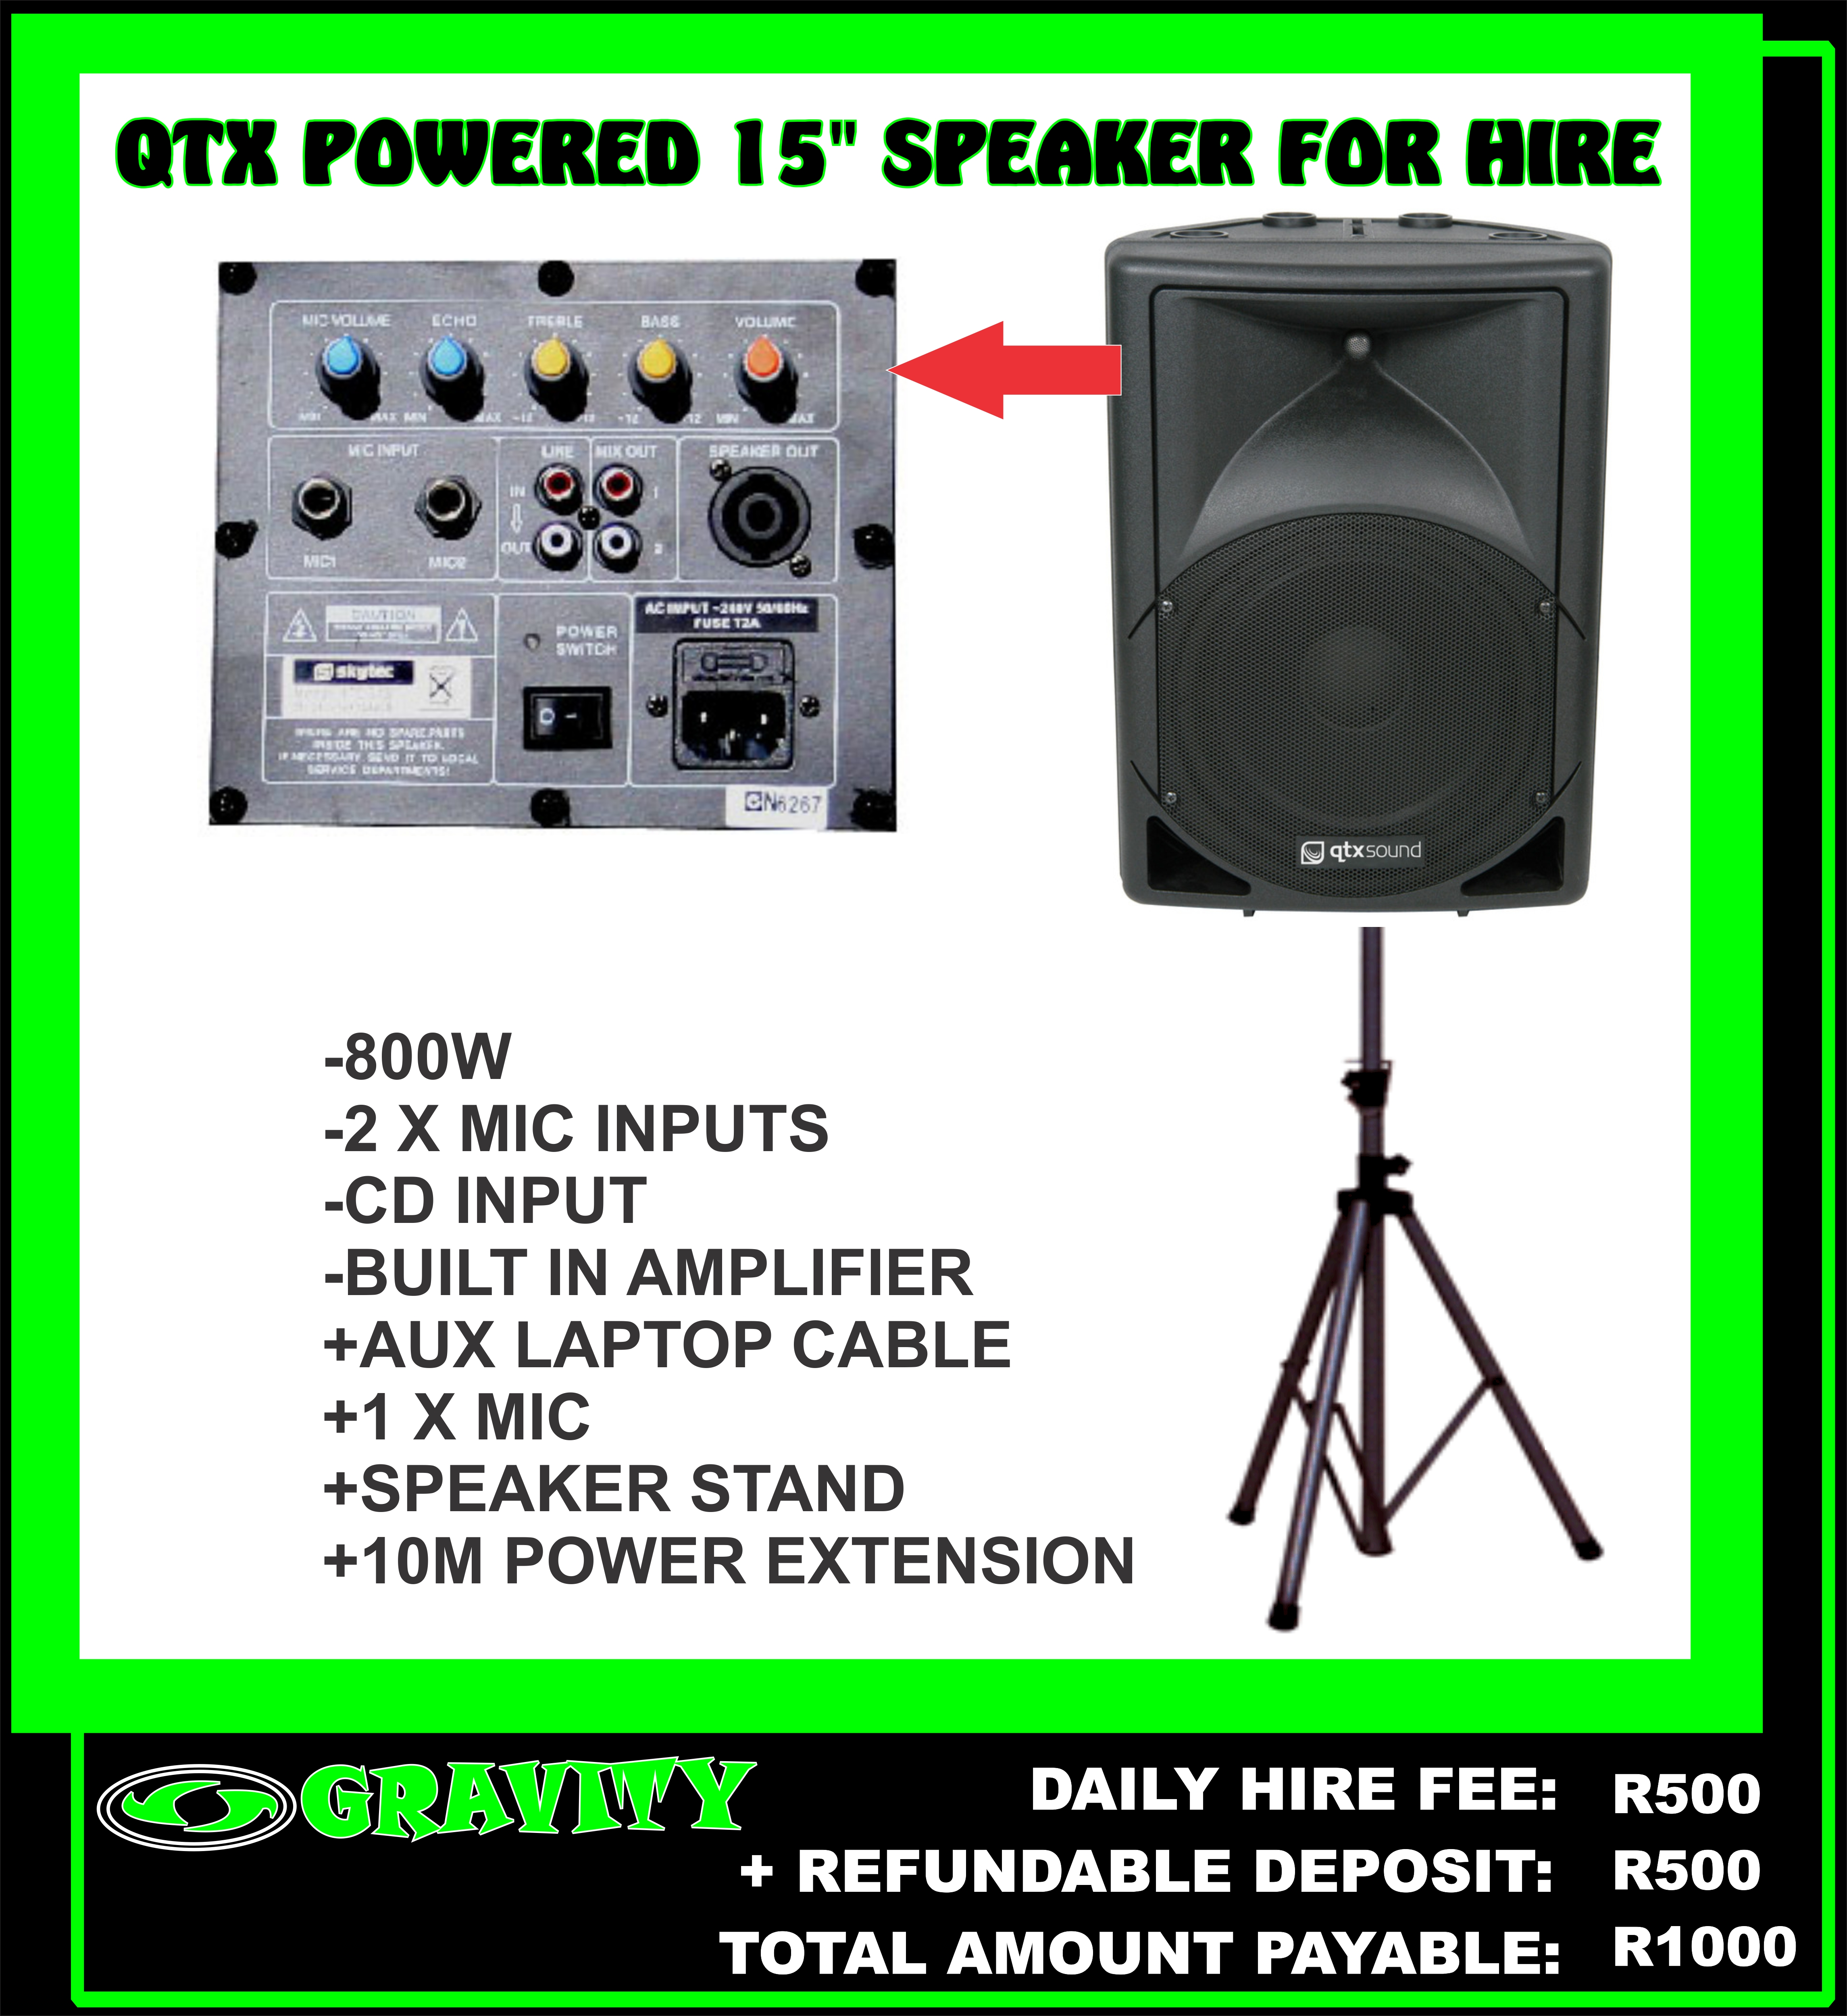 15' QTX POWERED 800W SPEAKER FOR HIRE IN DURBAN AT GRAVITY SOUND AND LIGHTING WAREHOUSE 0315072736  -AUX LAPTOP INPUT AND THE COMBO ALSO INCLUDES A MIC.  DAY HIRE FEE= R500